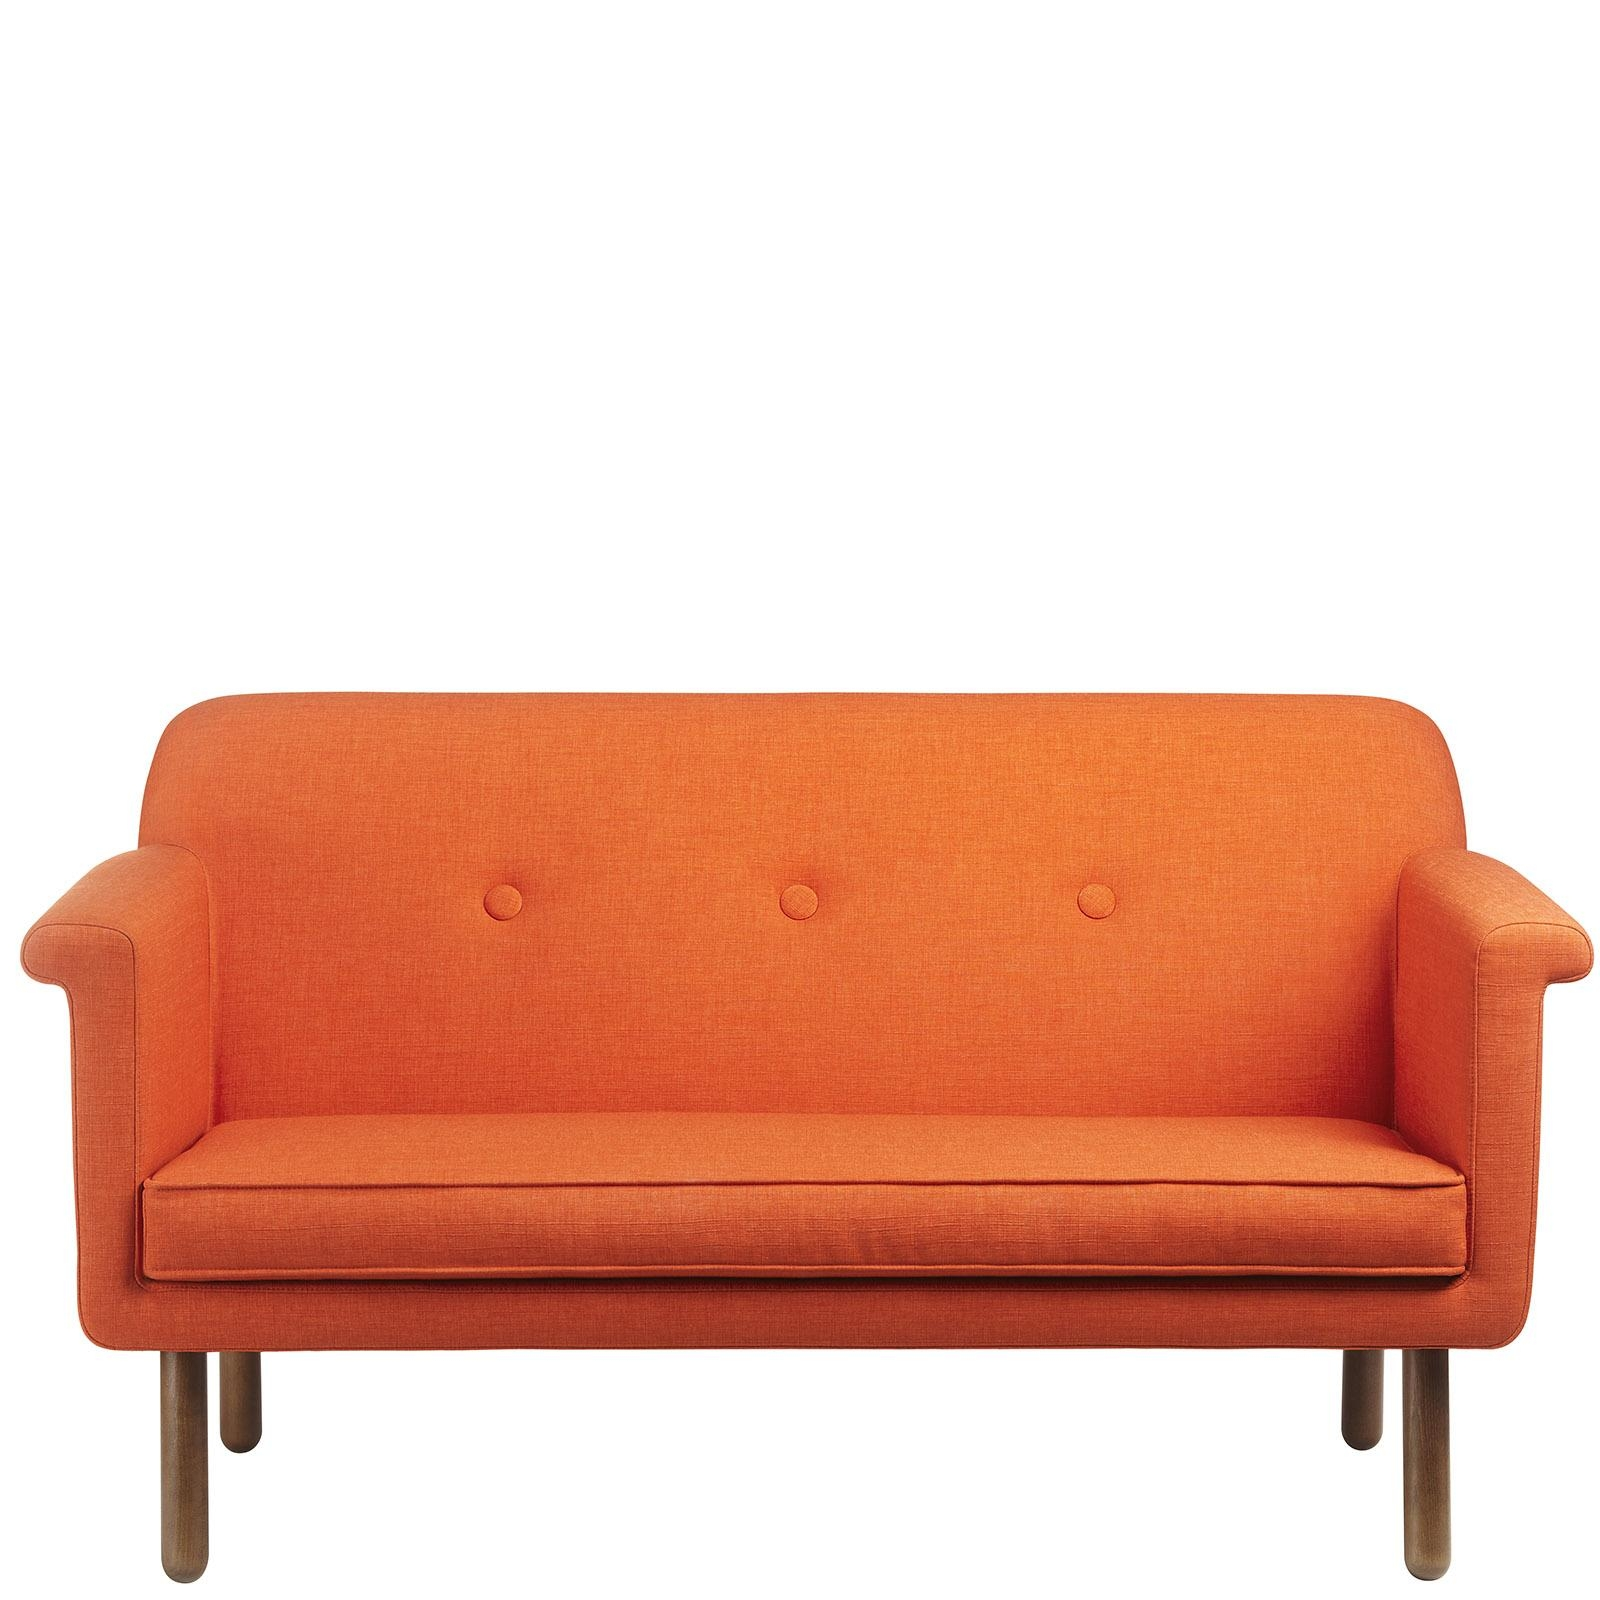 Furniture Livingroom Well Liked Sleeper Couch With Orange Sofa Pertaining To Orange Sofa Chairs (View 13 of 20)